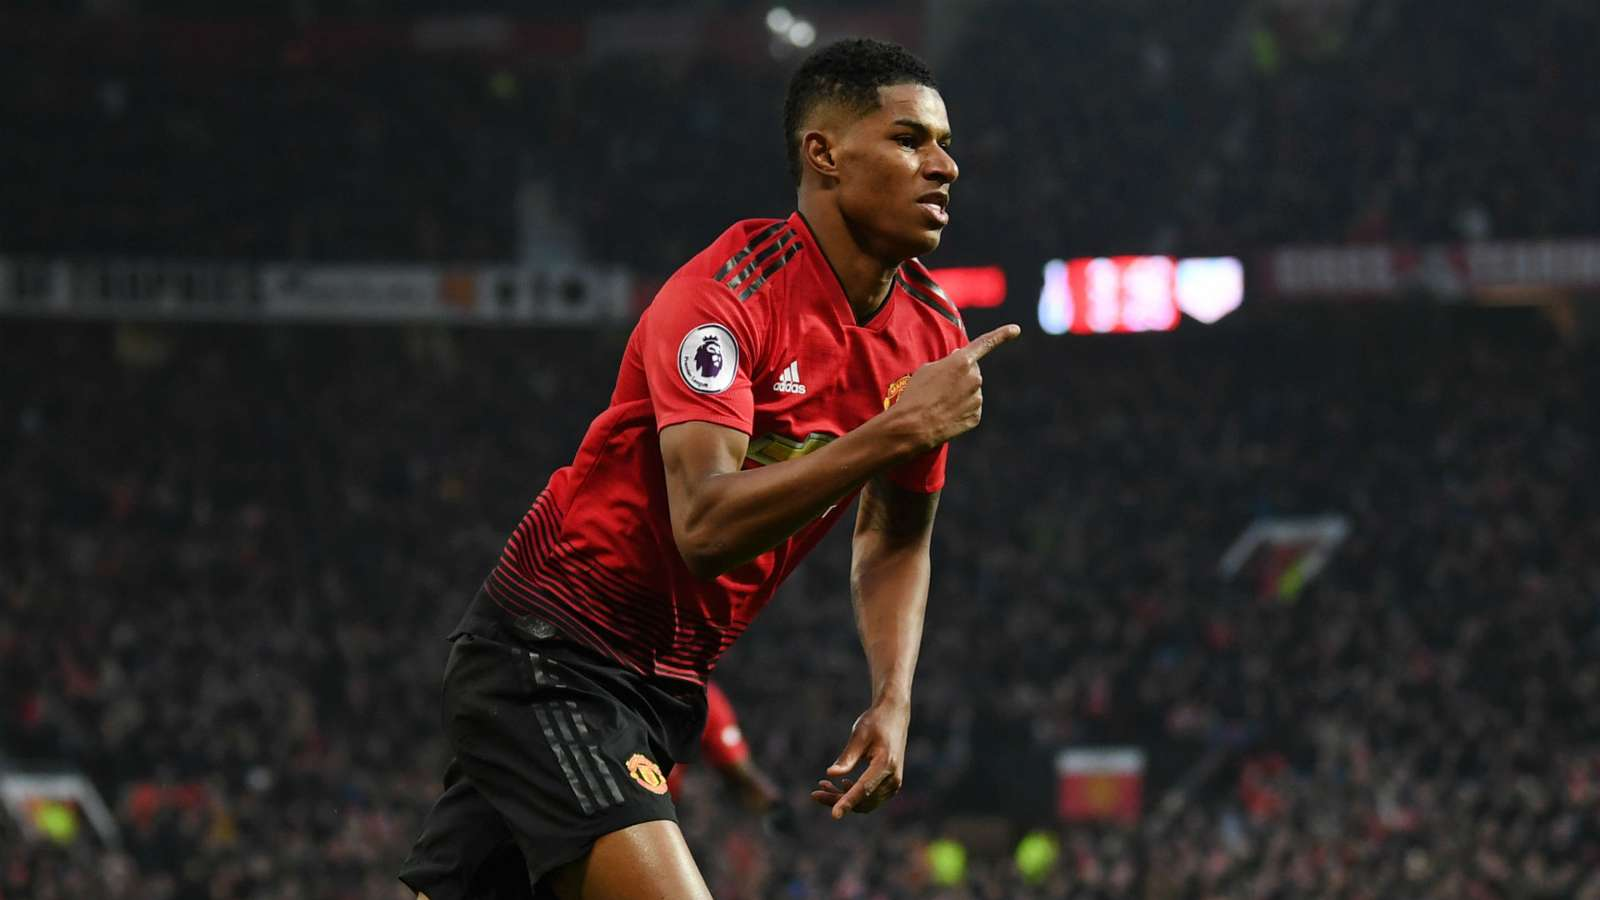 Photo of Manchester United 2-1 Brighton and Hove Albion: Match Report & Highlights